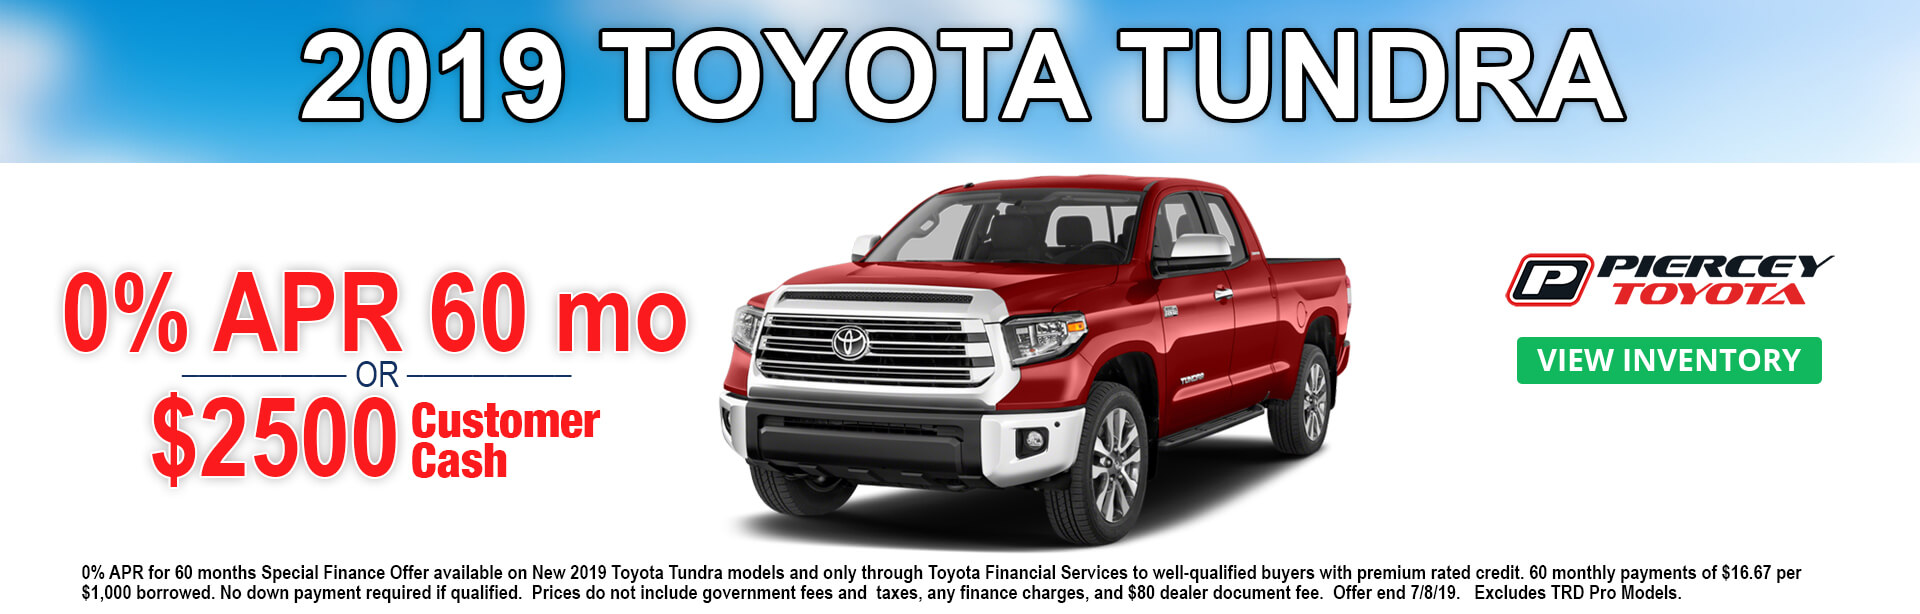 presidents day car deals 2019 toyota